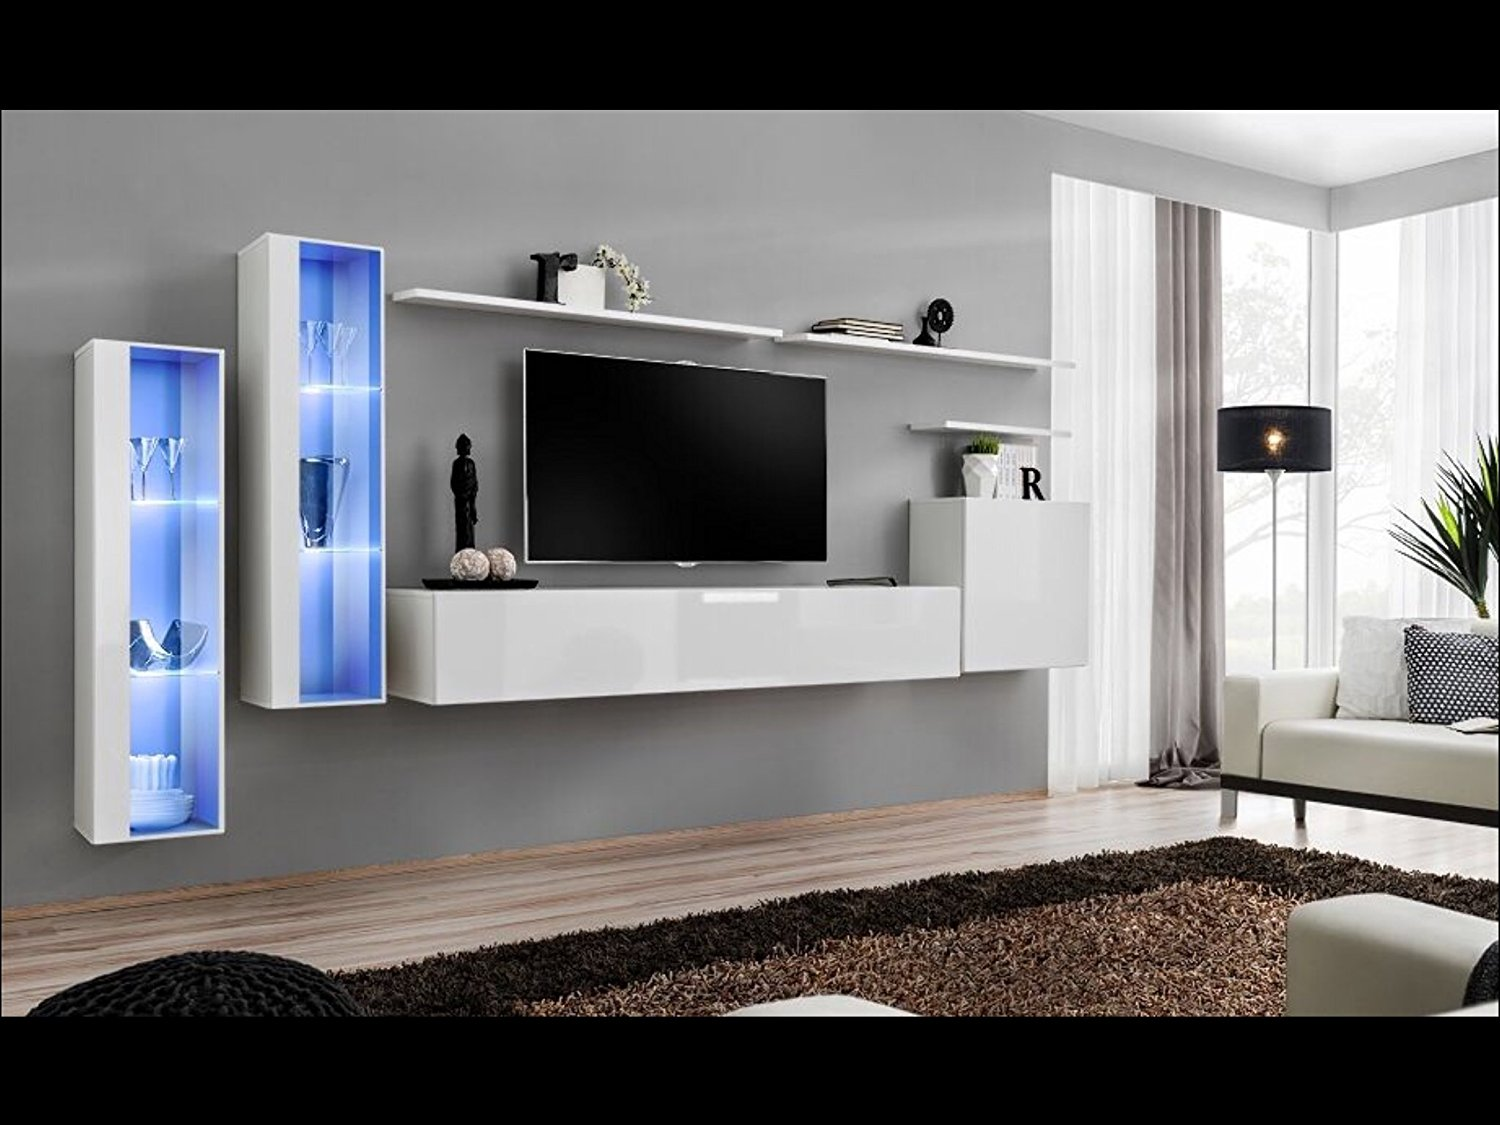 SHIFT XI   Seattle Collection High Gloss Living Room Furniture   Floating  TV Cabinet   European Design Wall Mounted Cabinets With LED Lighting (White  ...